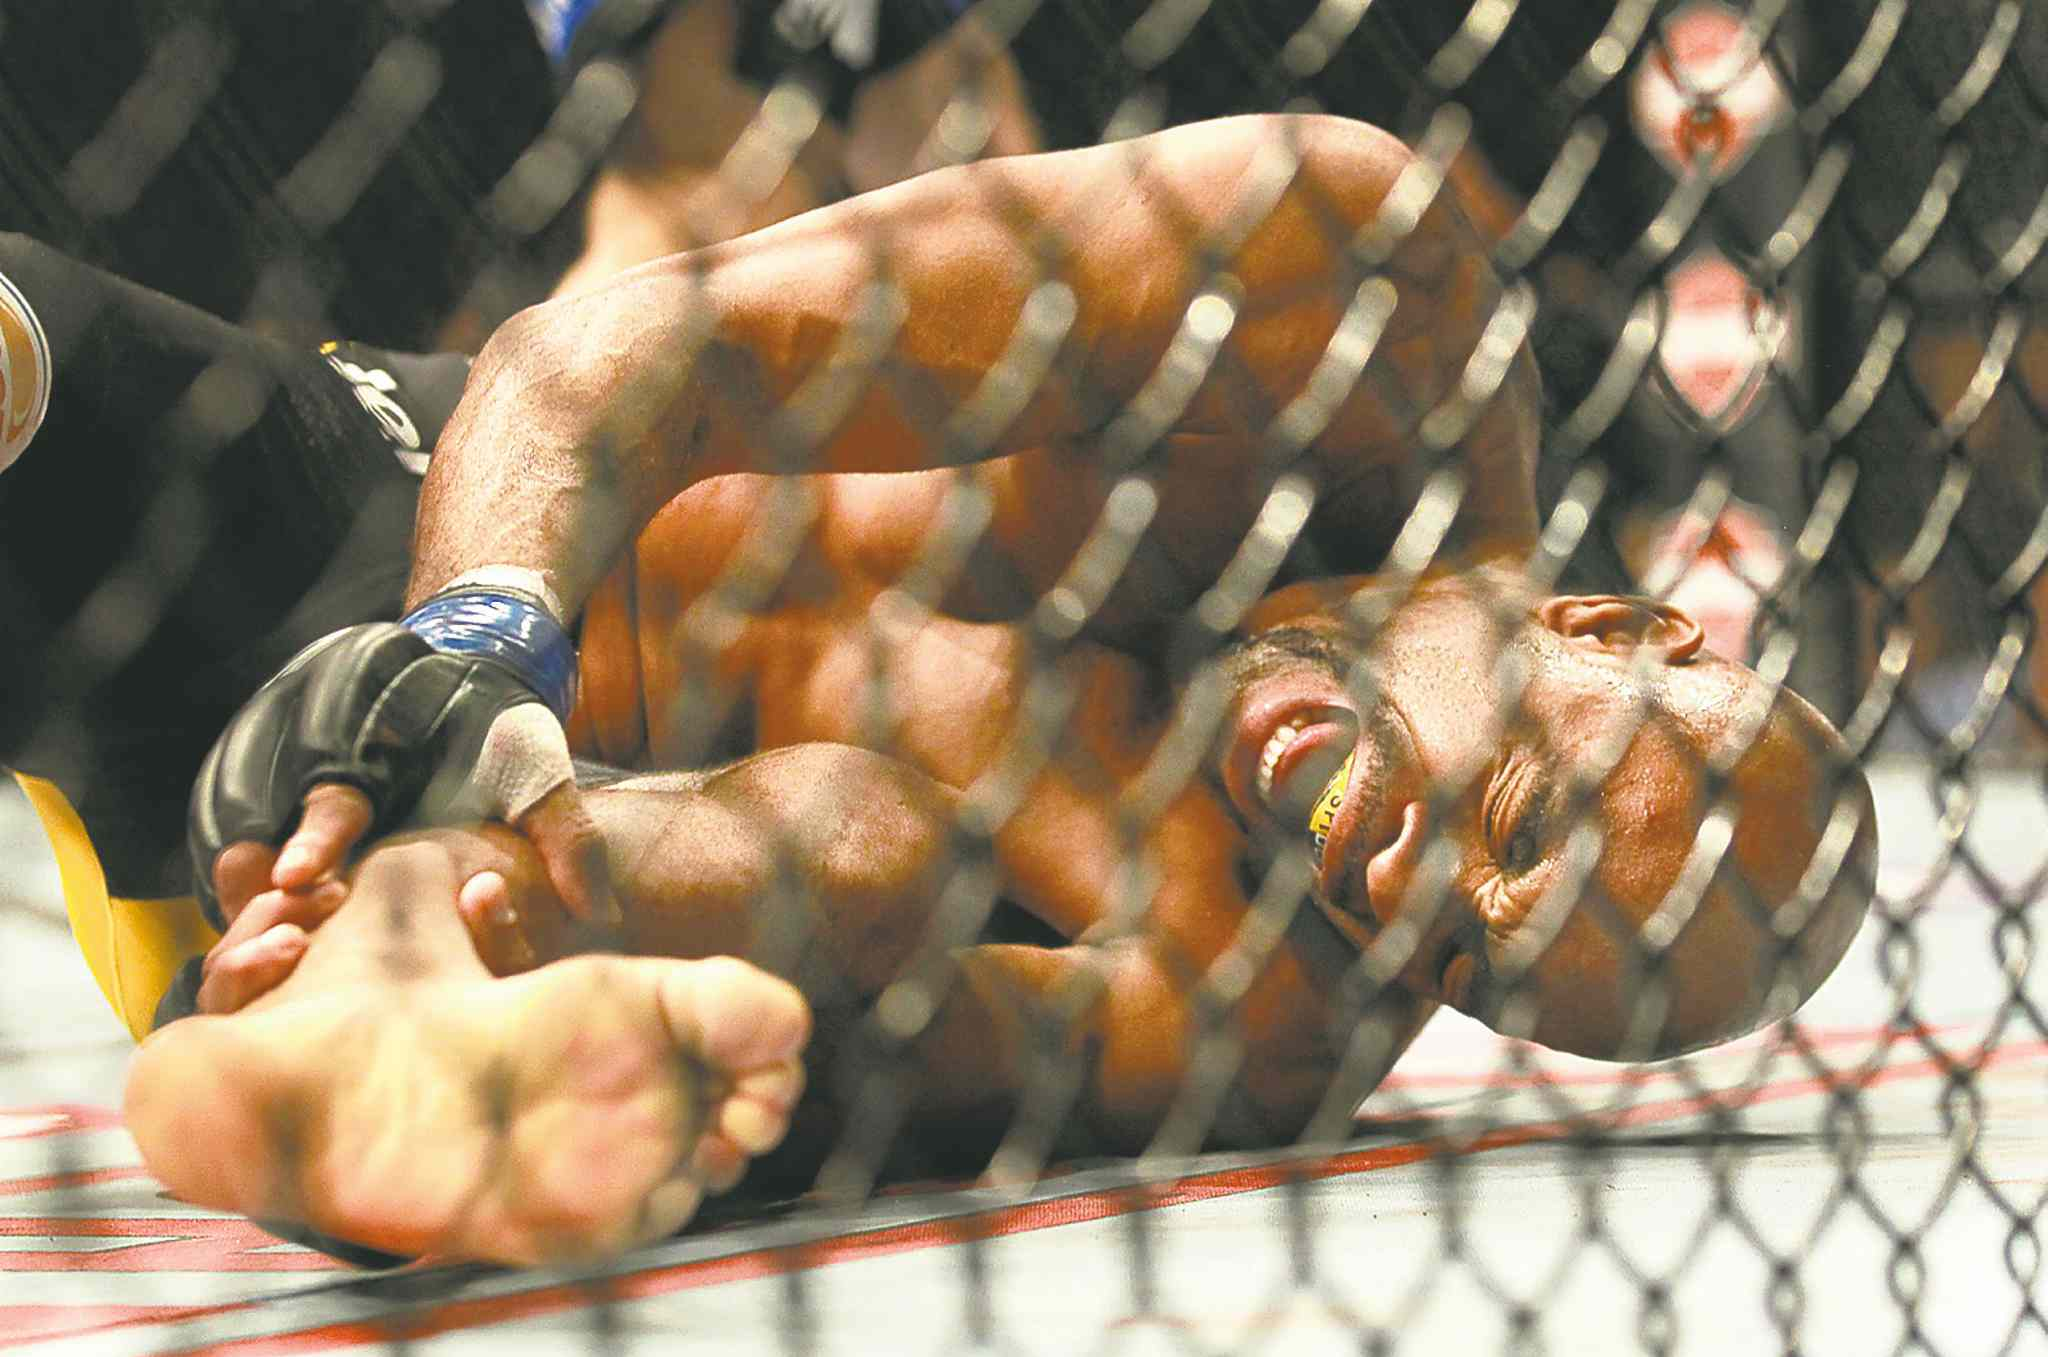 Anderson Silva was dominated by Chris Weidman before breaking his leg during the fight's second round.